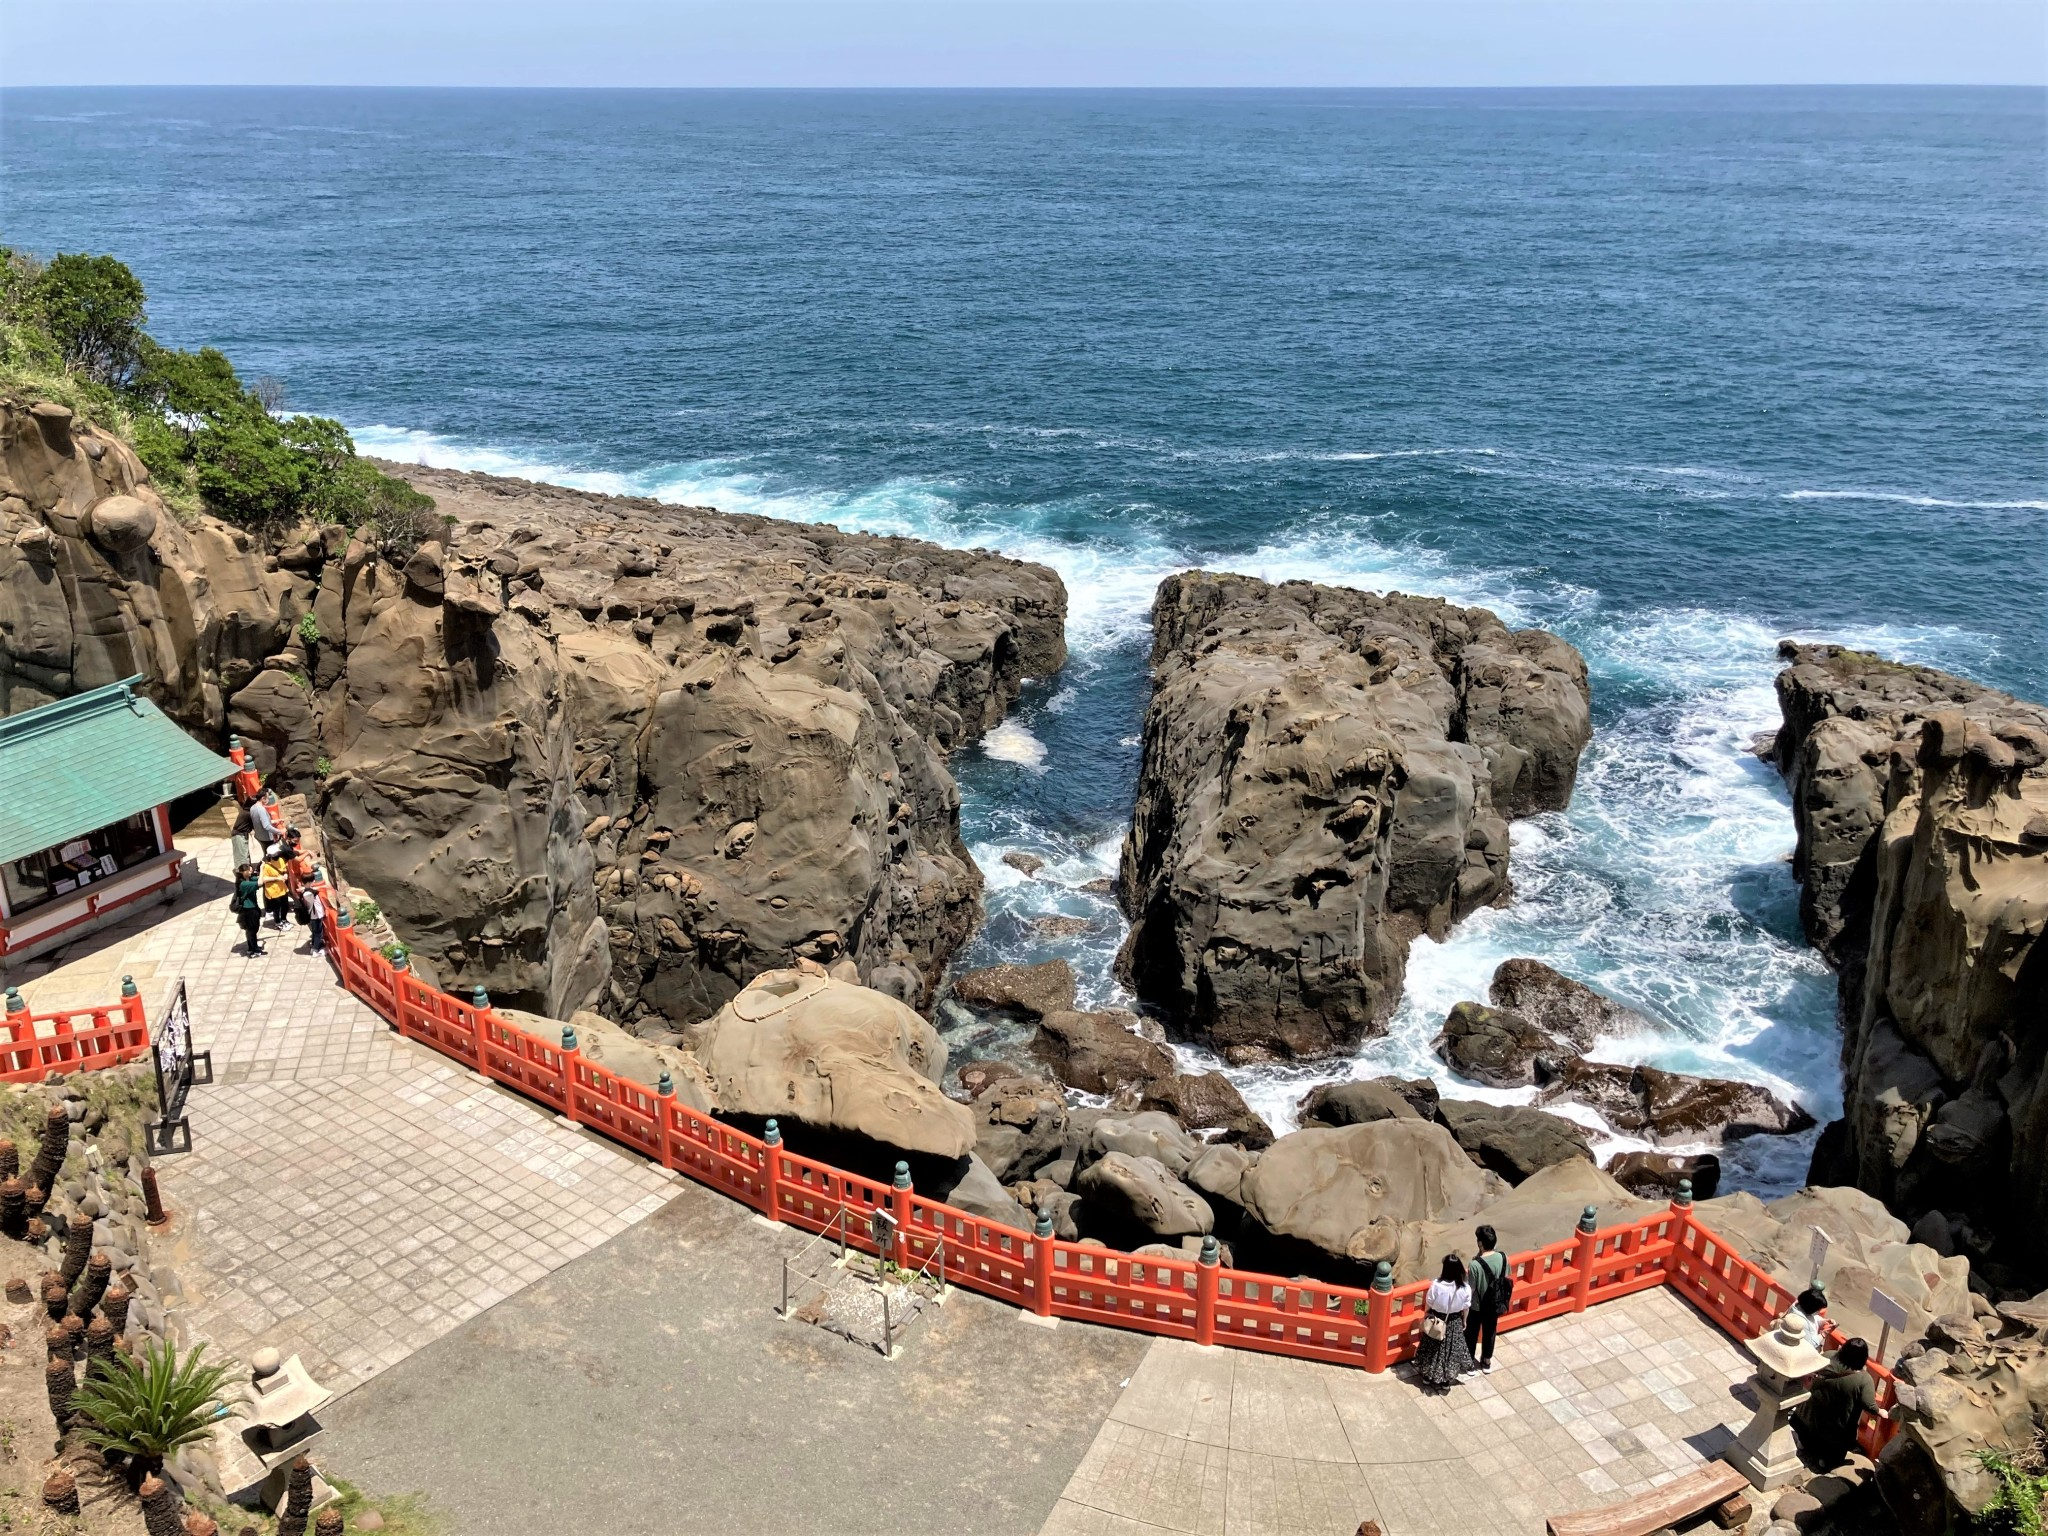 Two small groups of tourists looking out over the rocky headland and ocean at Udo Shrine in Miyazaki, Japan.